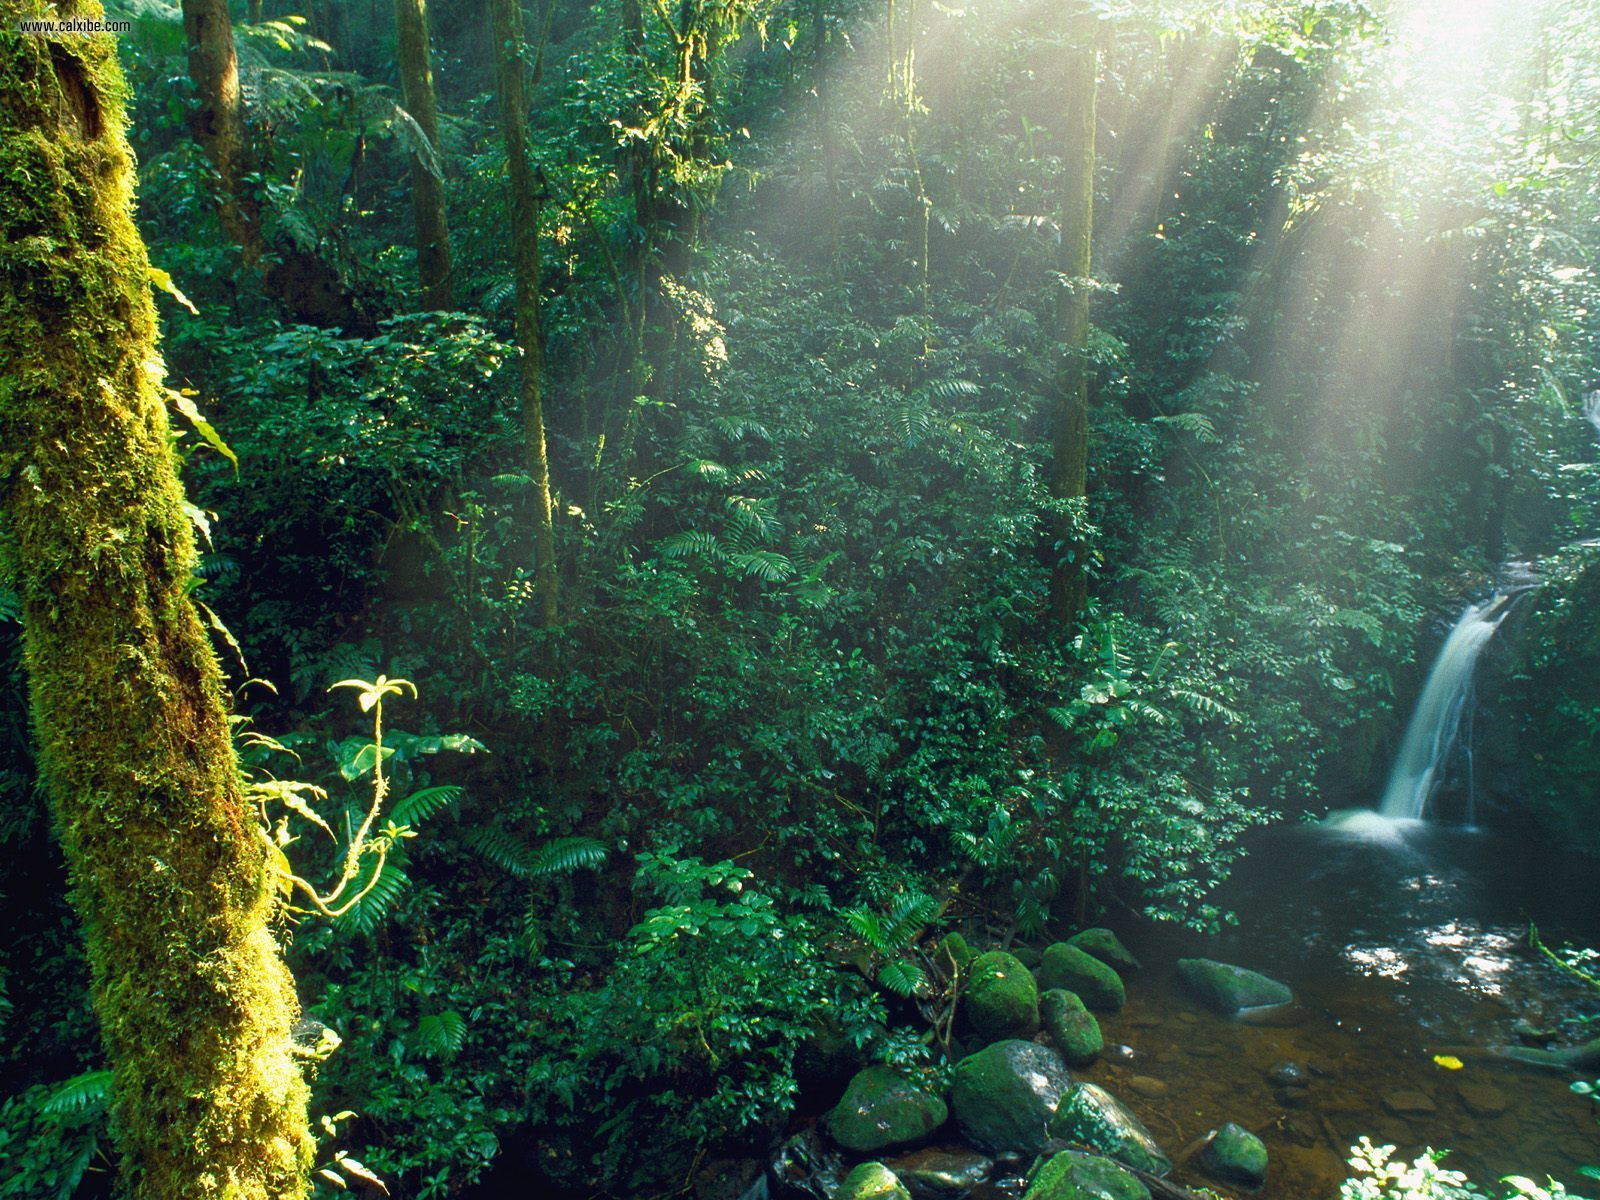 Costa Rican forests